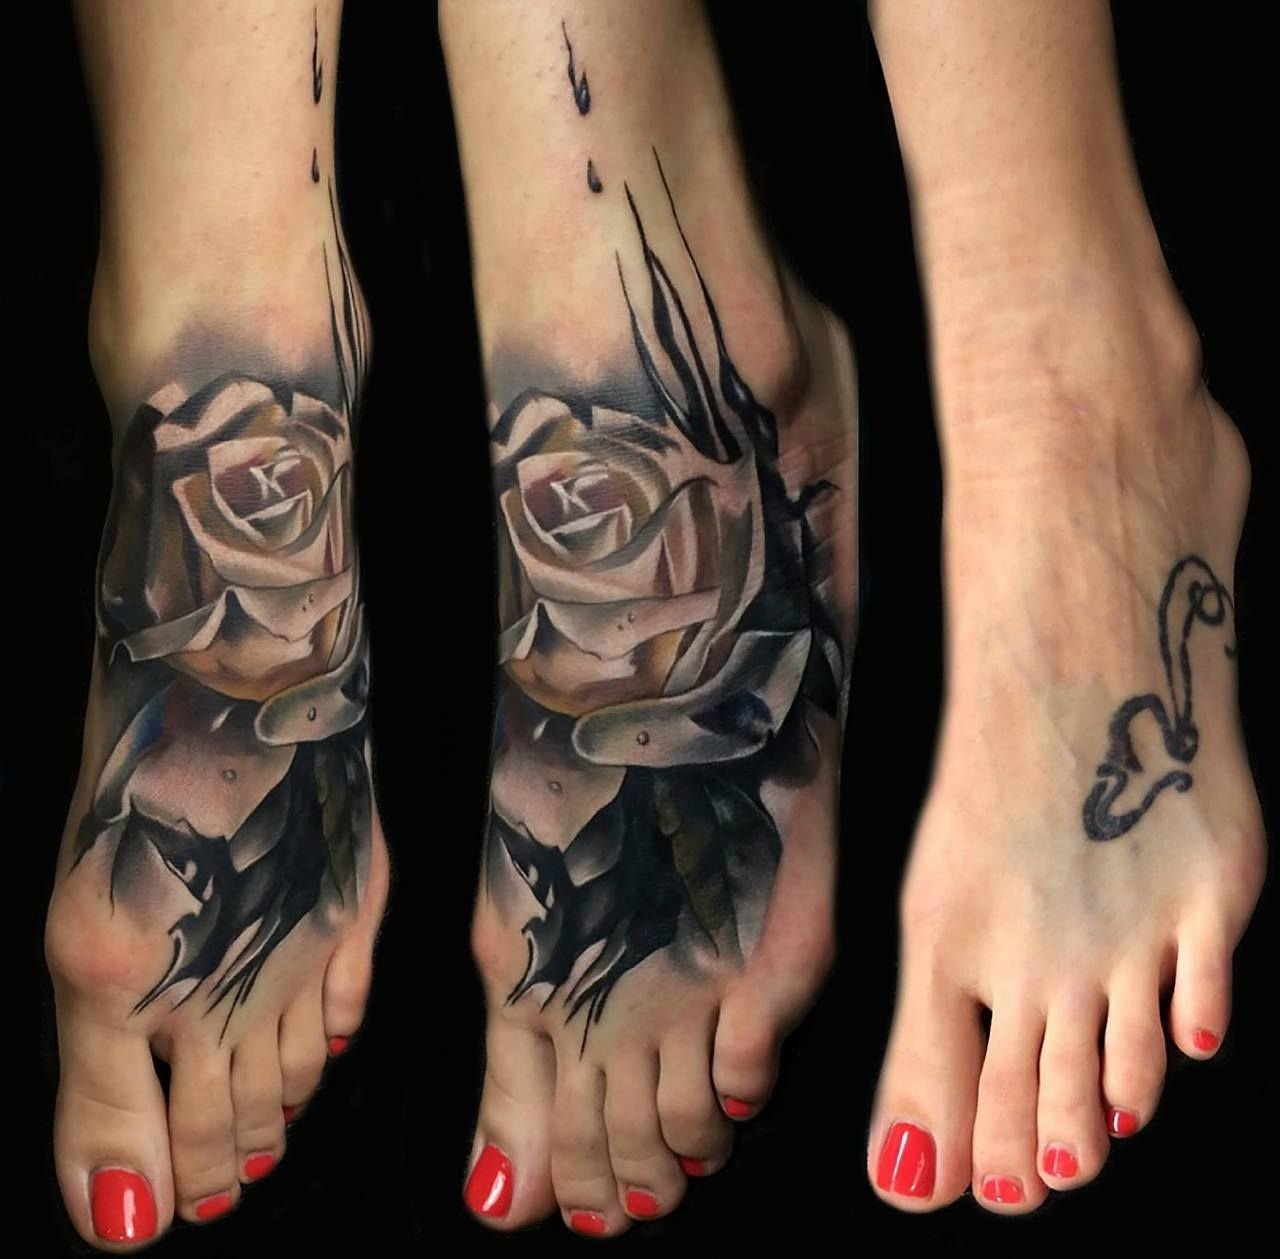 10 Great Ankle Tattoo Cover Up Ideas coverup tattoo foot rose cover up tattoo design best tattoo 5